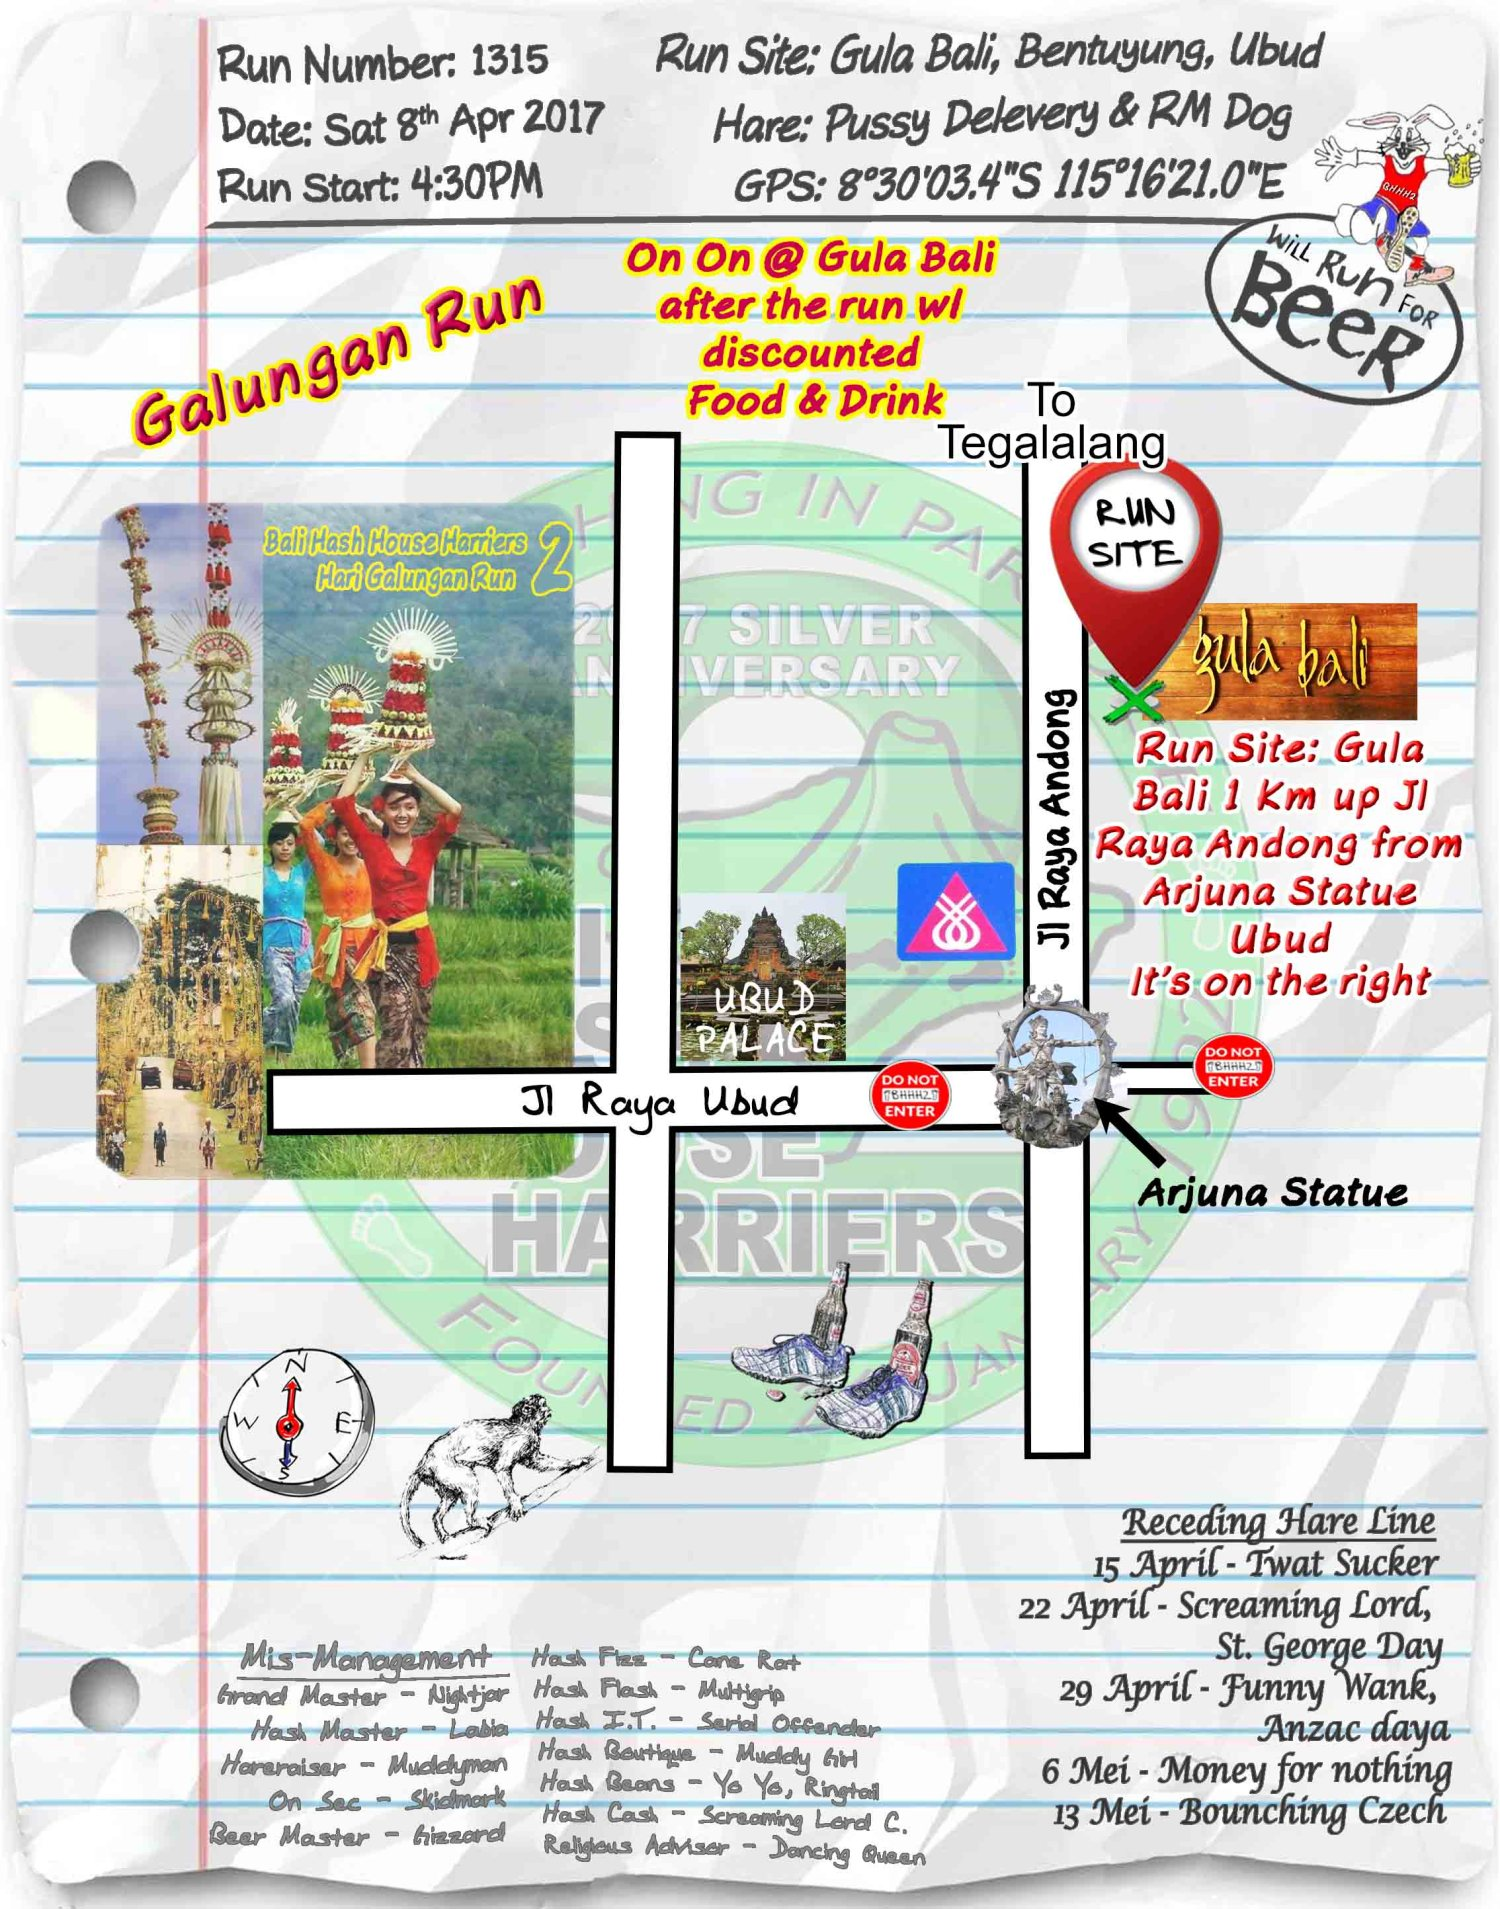 BHHH2 Next Run Map Sat 8th Apr 2017 Gula Bali, Bentuyung, Ubud